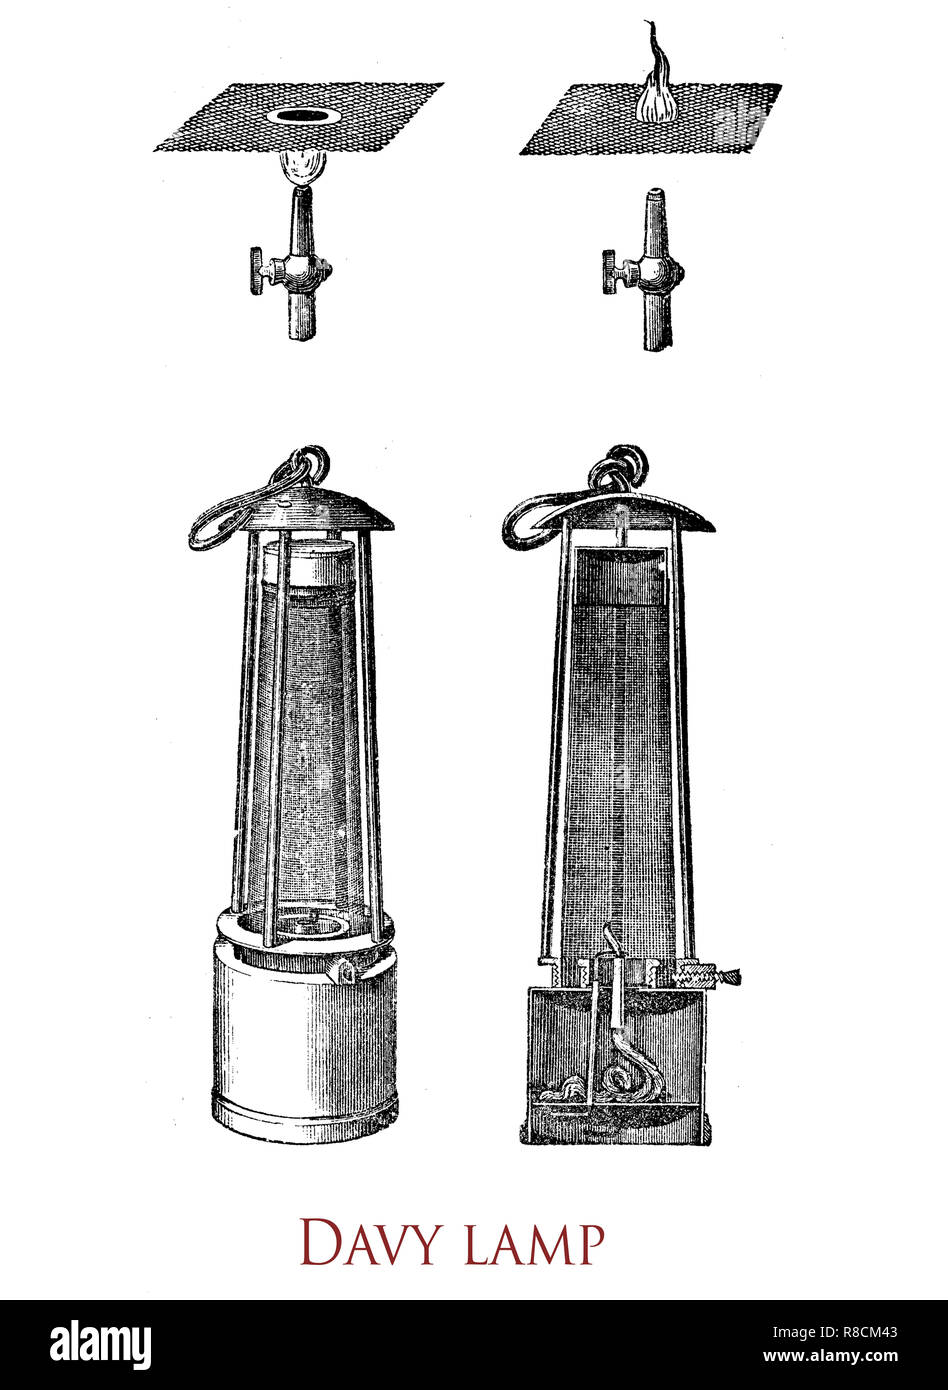 Vintage engraving of the Davy lamp, safety lamp for use in flammable atmospheres like coal mines, invented in 1815 by Sir Humphrey Davy. It consists of a wick lamp with the flame enclosed inside a mesh screen - Stock Image